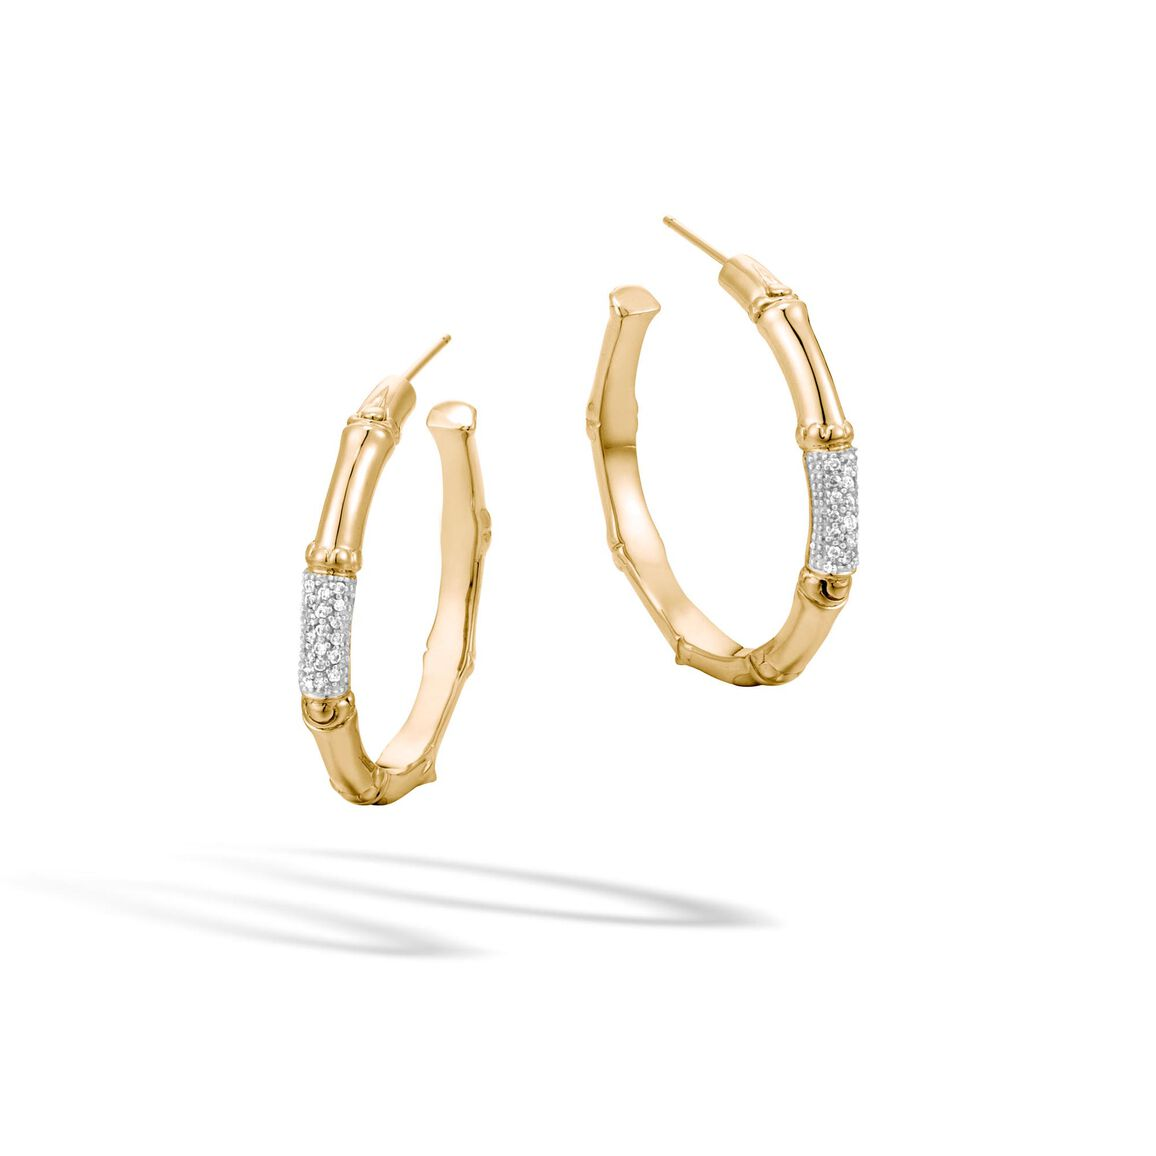 Bamboo Medium Hoop Earring in 18K Gold with Diamonds